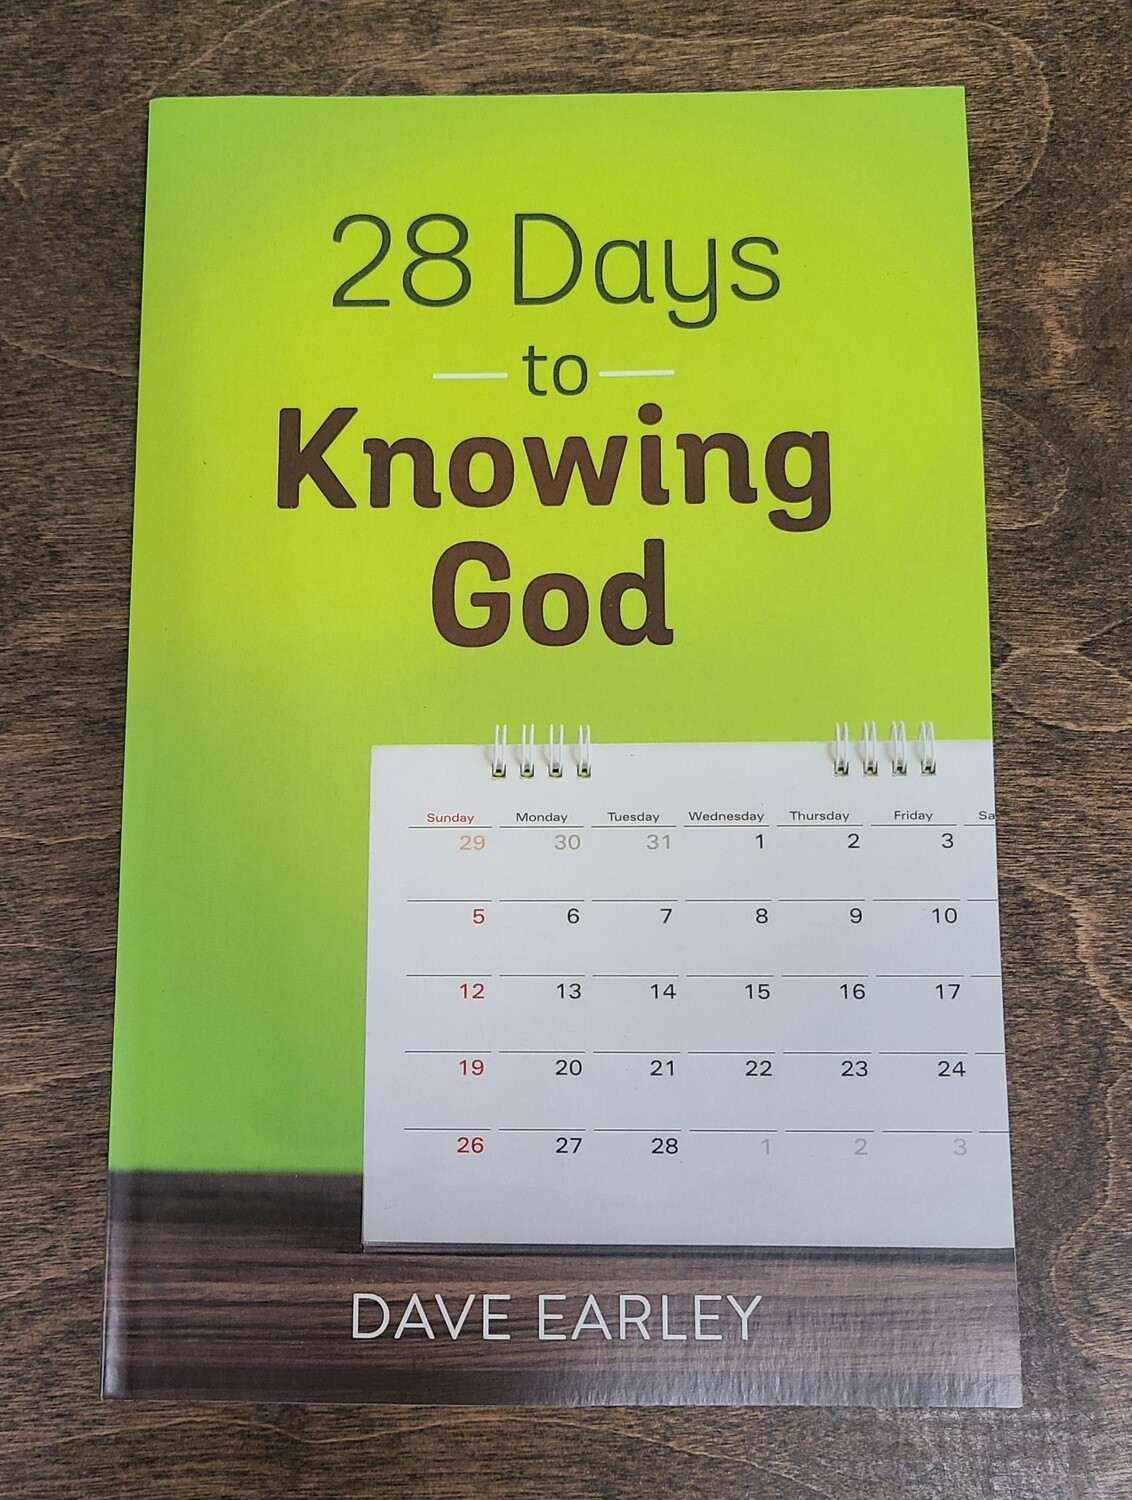 28 Days to Knowing God by Dave Earley